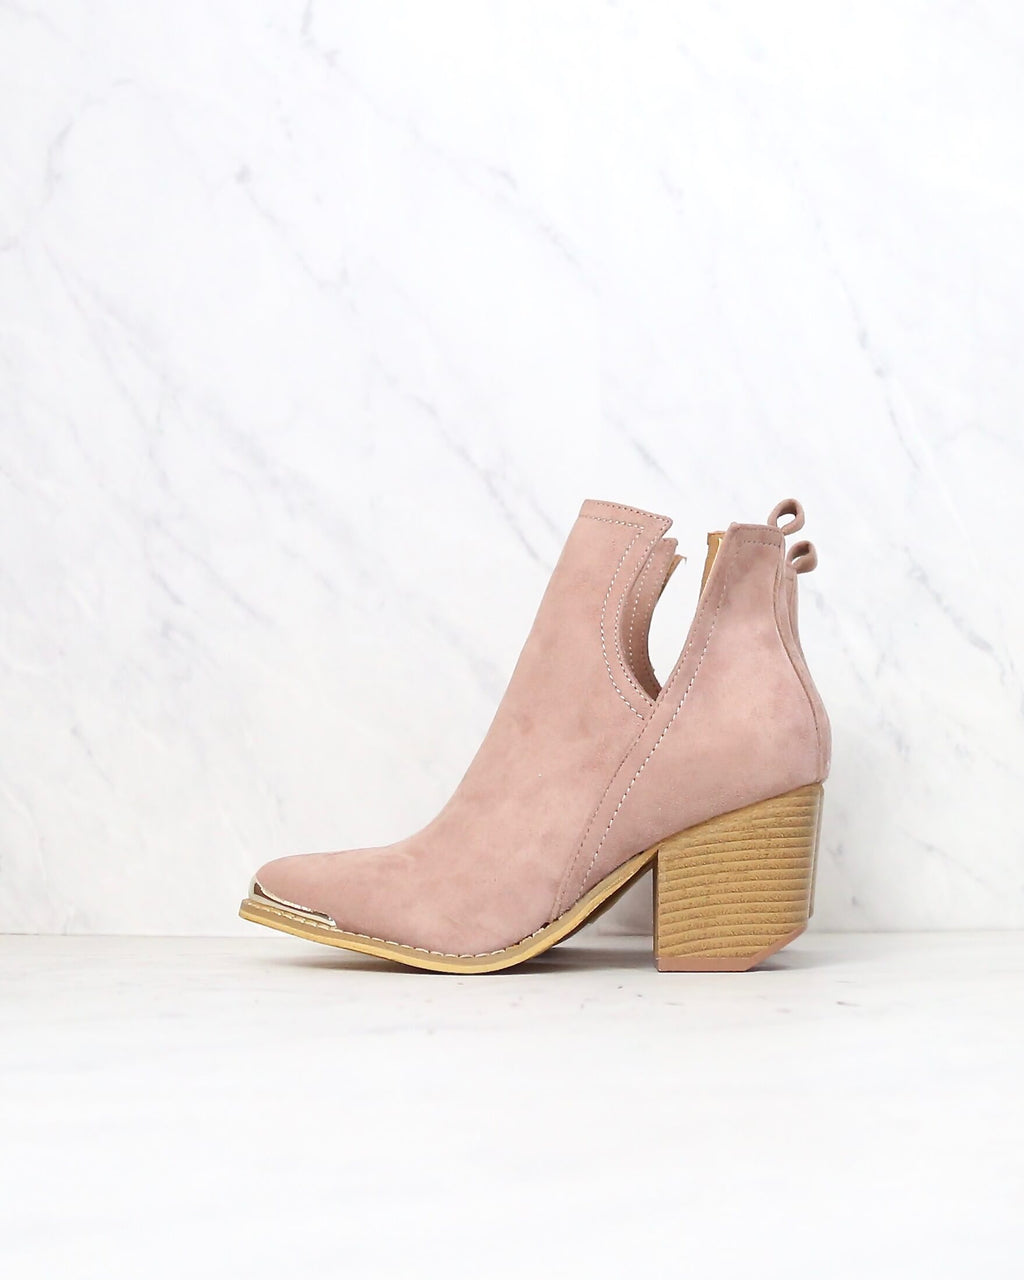 Final Sale - Vegan Suede Side Cut Out Booties with Metal Tip in Rose